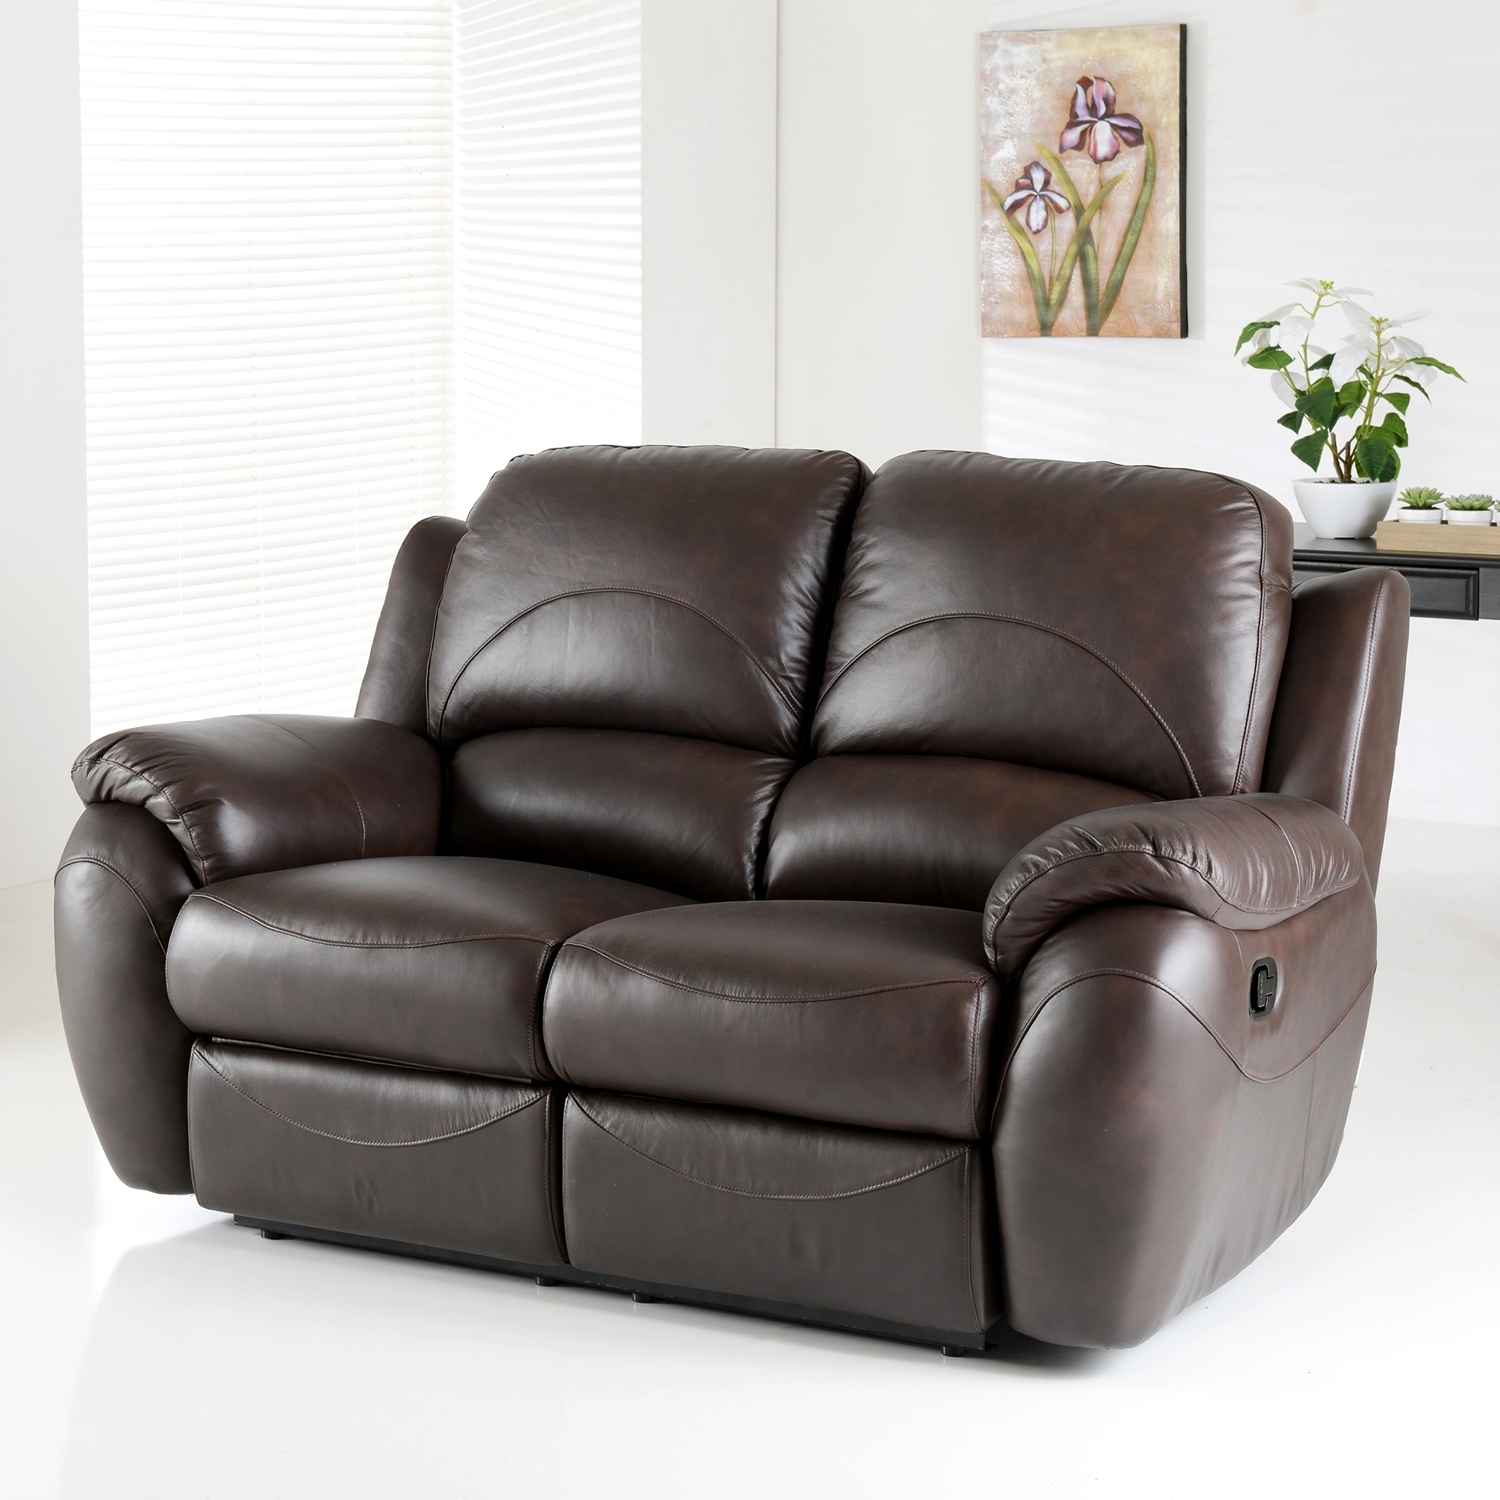 Trendy Cheap Reclining Loveseat With Console Used Leather Recliner Chair pertaining to 2 Seater Recliner Leather Sofas